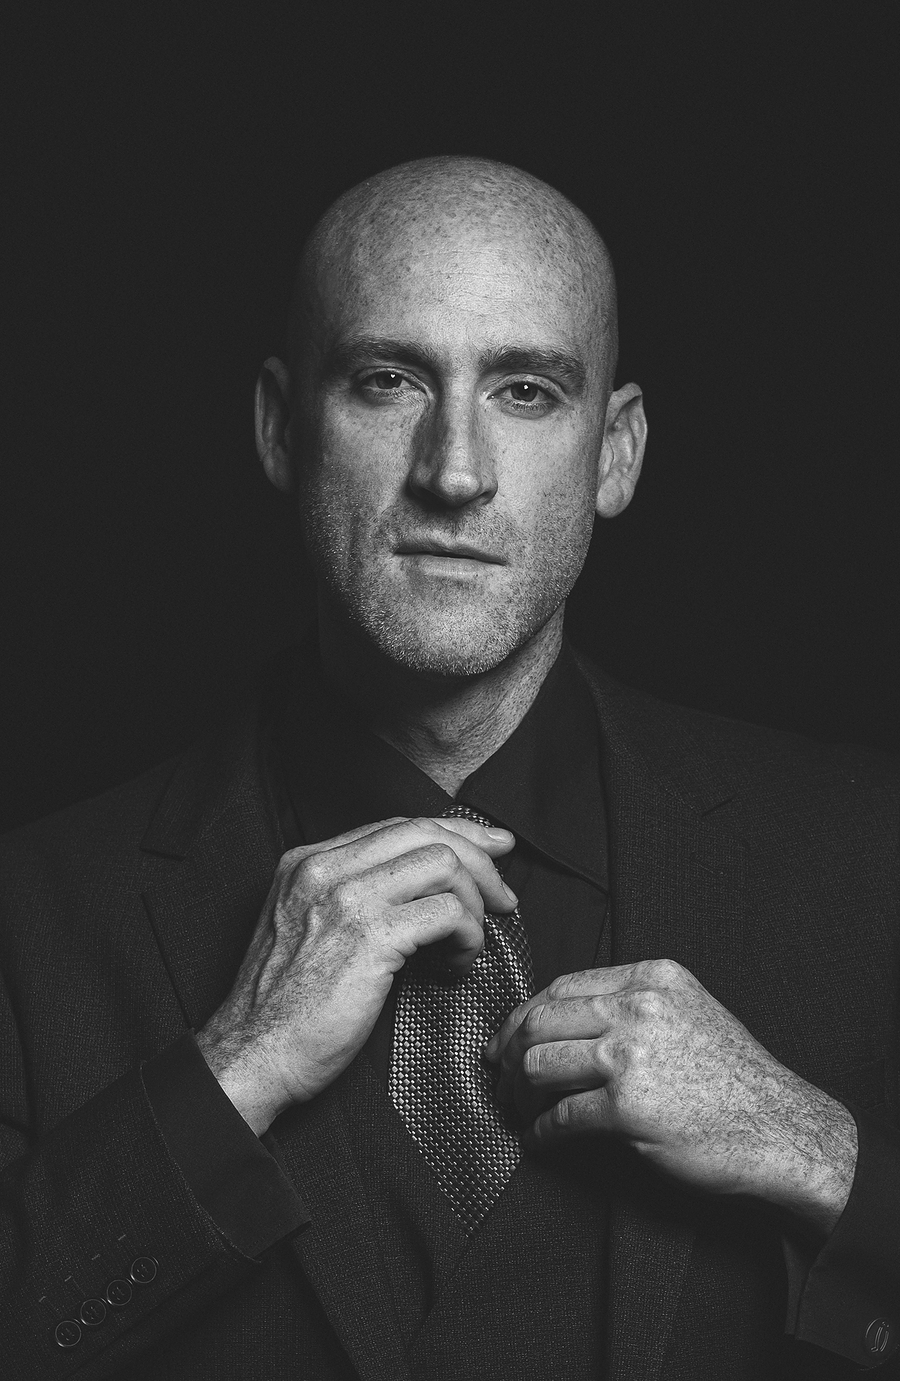 Formal / Photography by Dale Alexis Goldstone, Model Darren S / Uploaded 27th February 2020 @ 06:50 PM